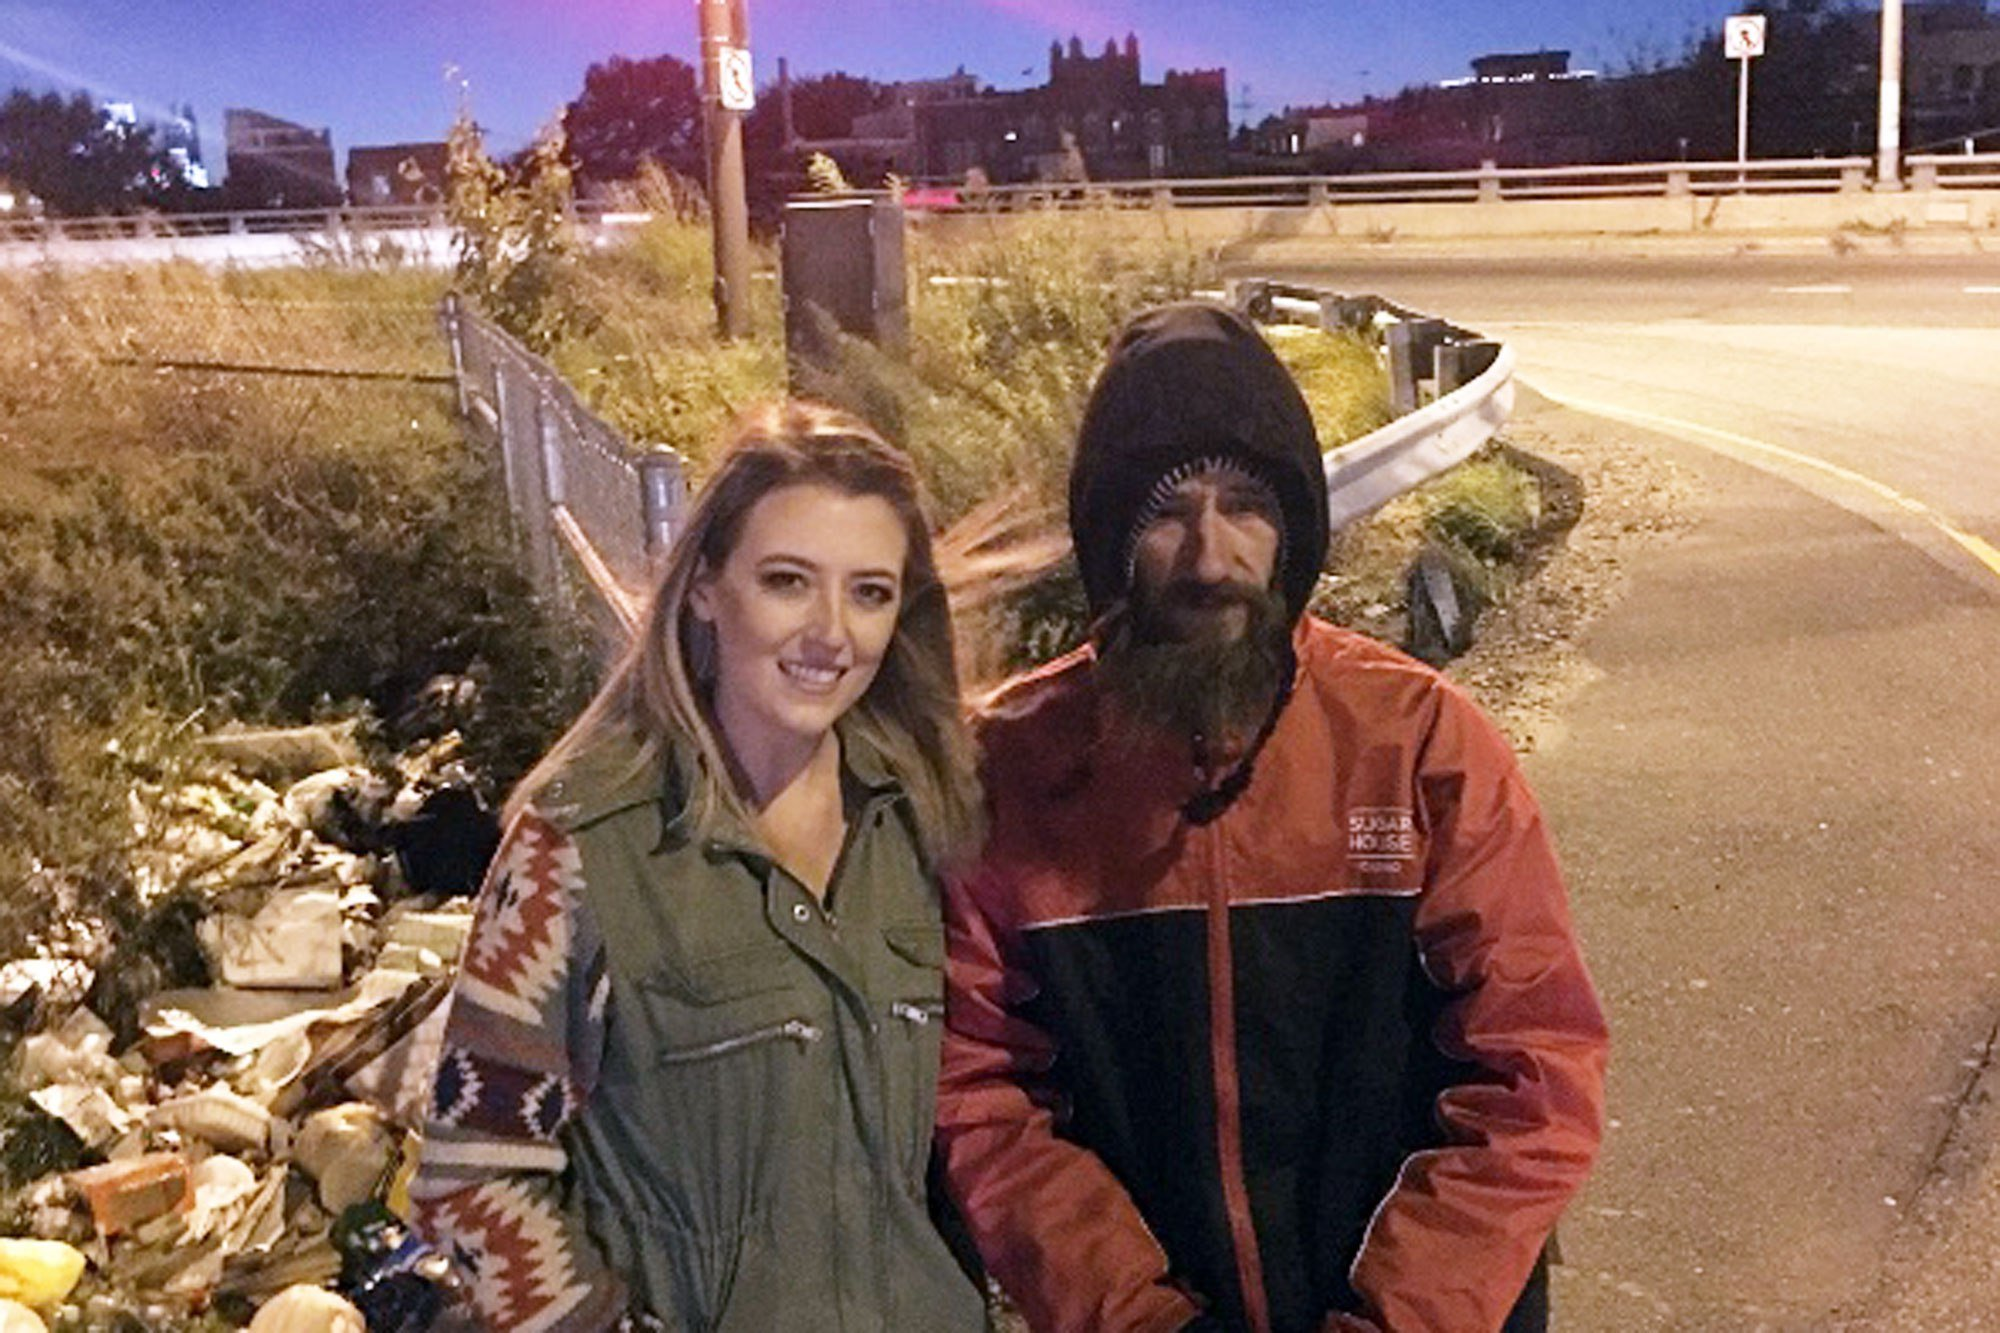 homeless vet 1 2000 1 - Homeless Vet Gave Away Last $20. His Act Of Kindness As Seen Him Rewarded With More Than $350,000